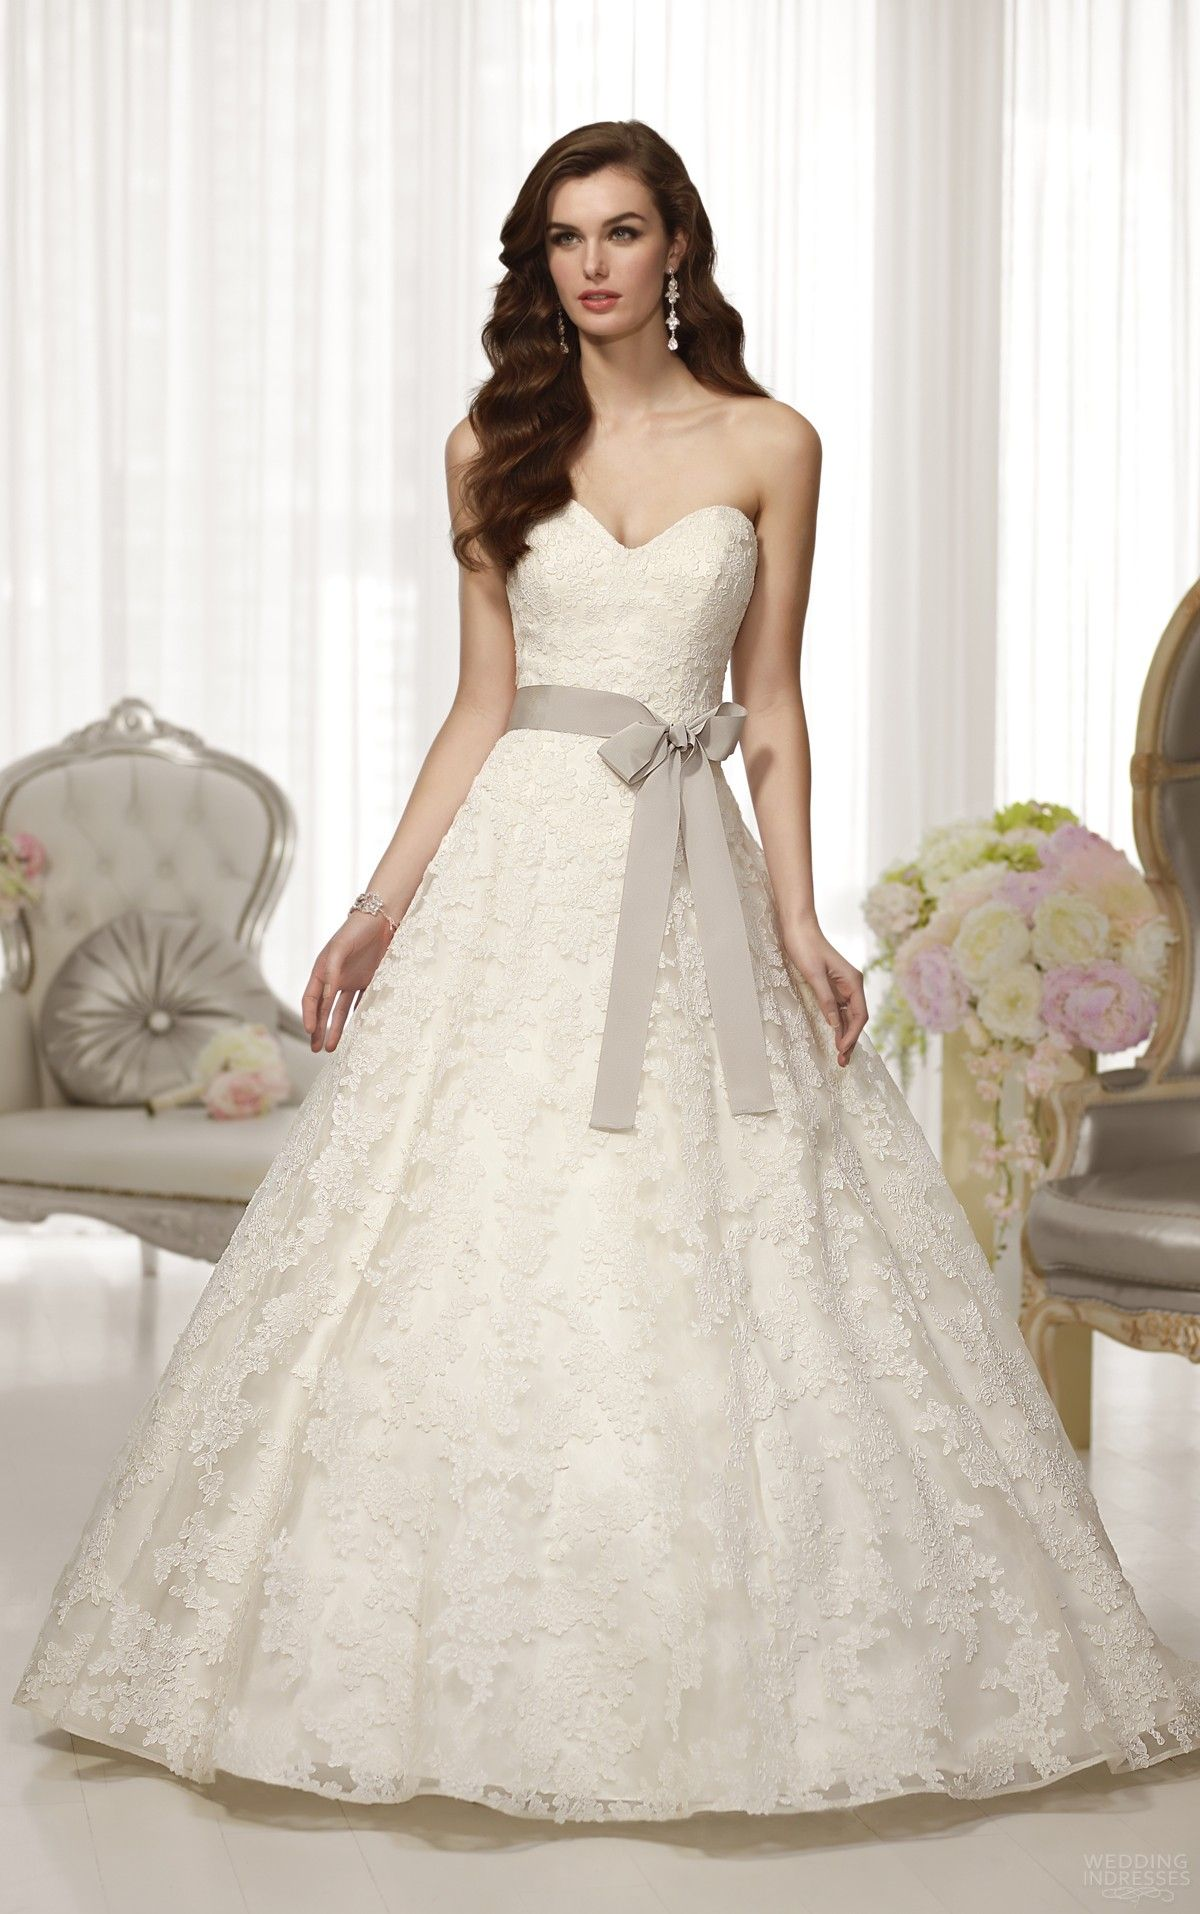 lace over organza line sweetheart wedding dress | Dresses ...